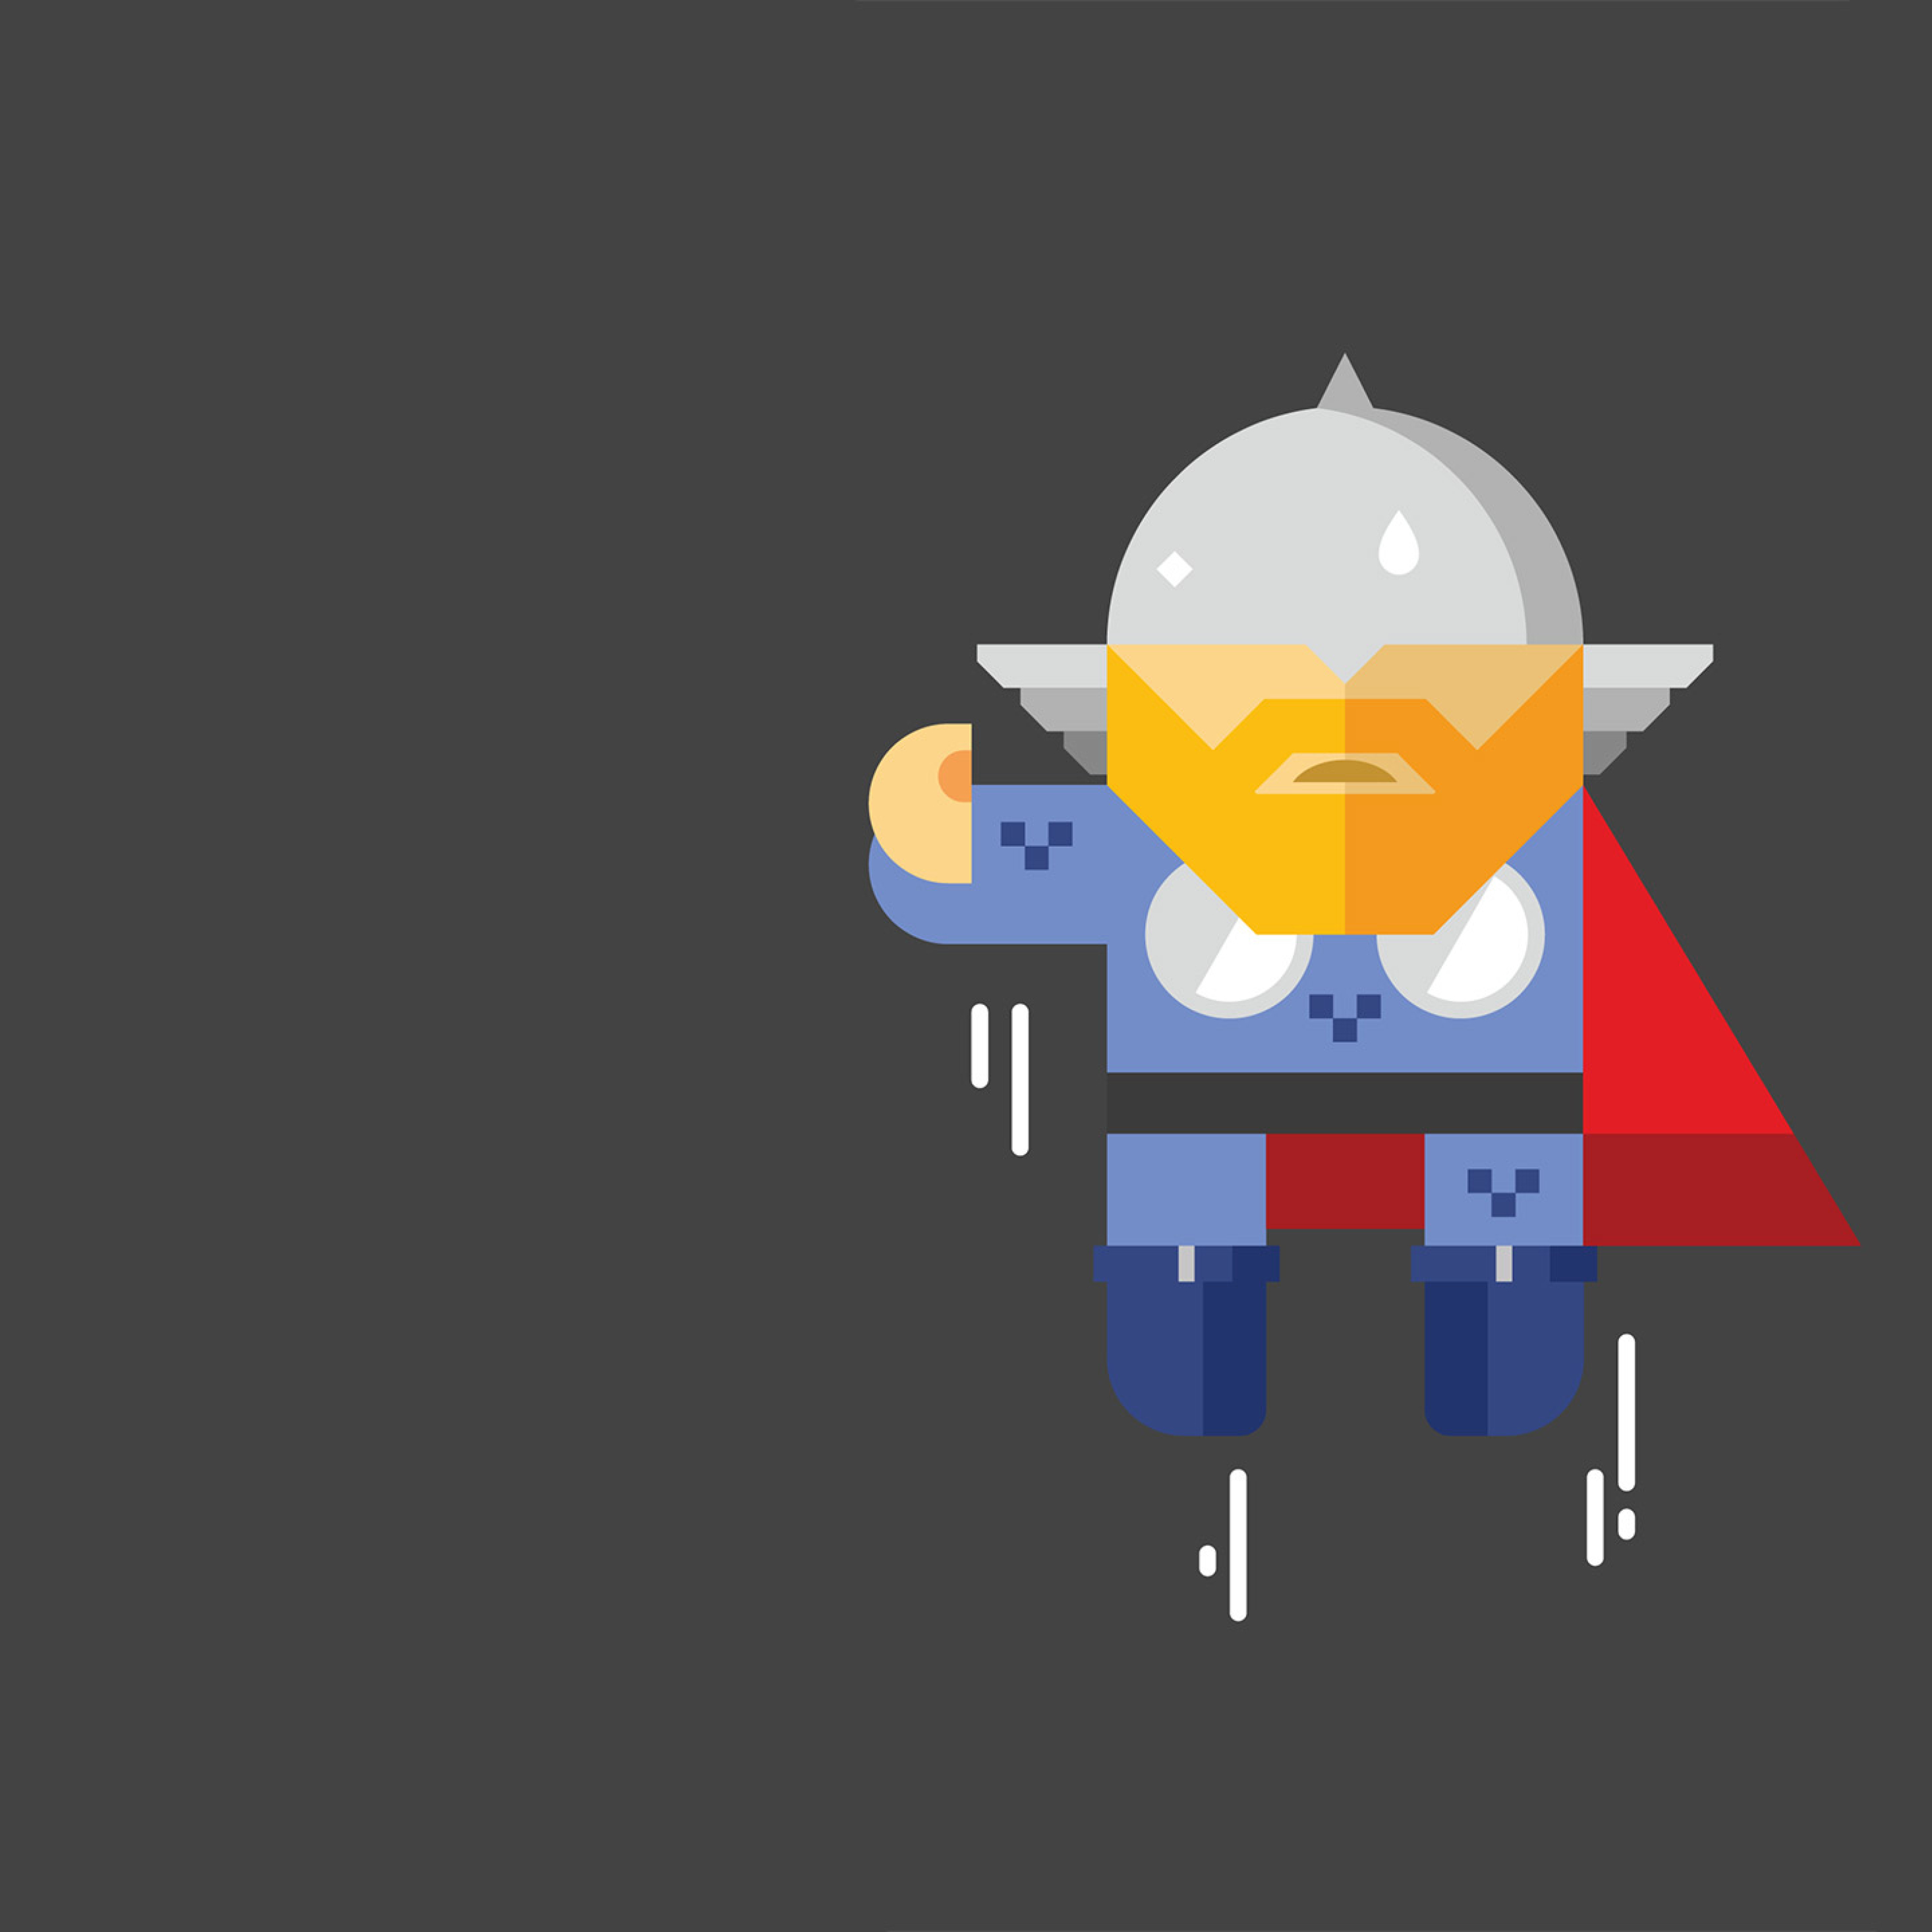 Download Thor Minimalism 2017 2560x1440 Resolution, Full